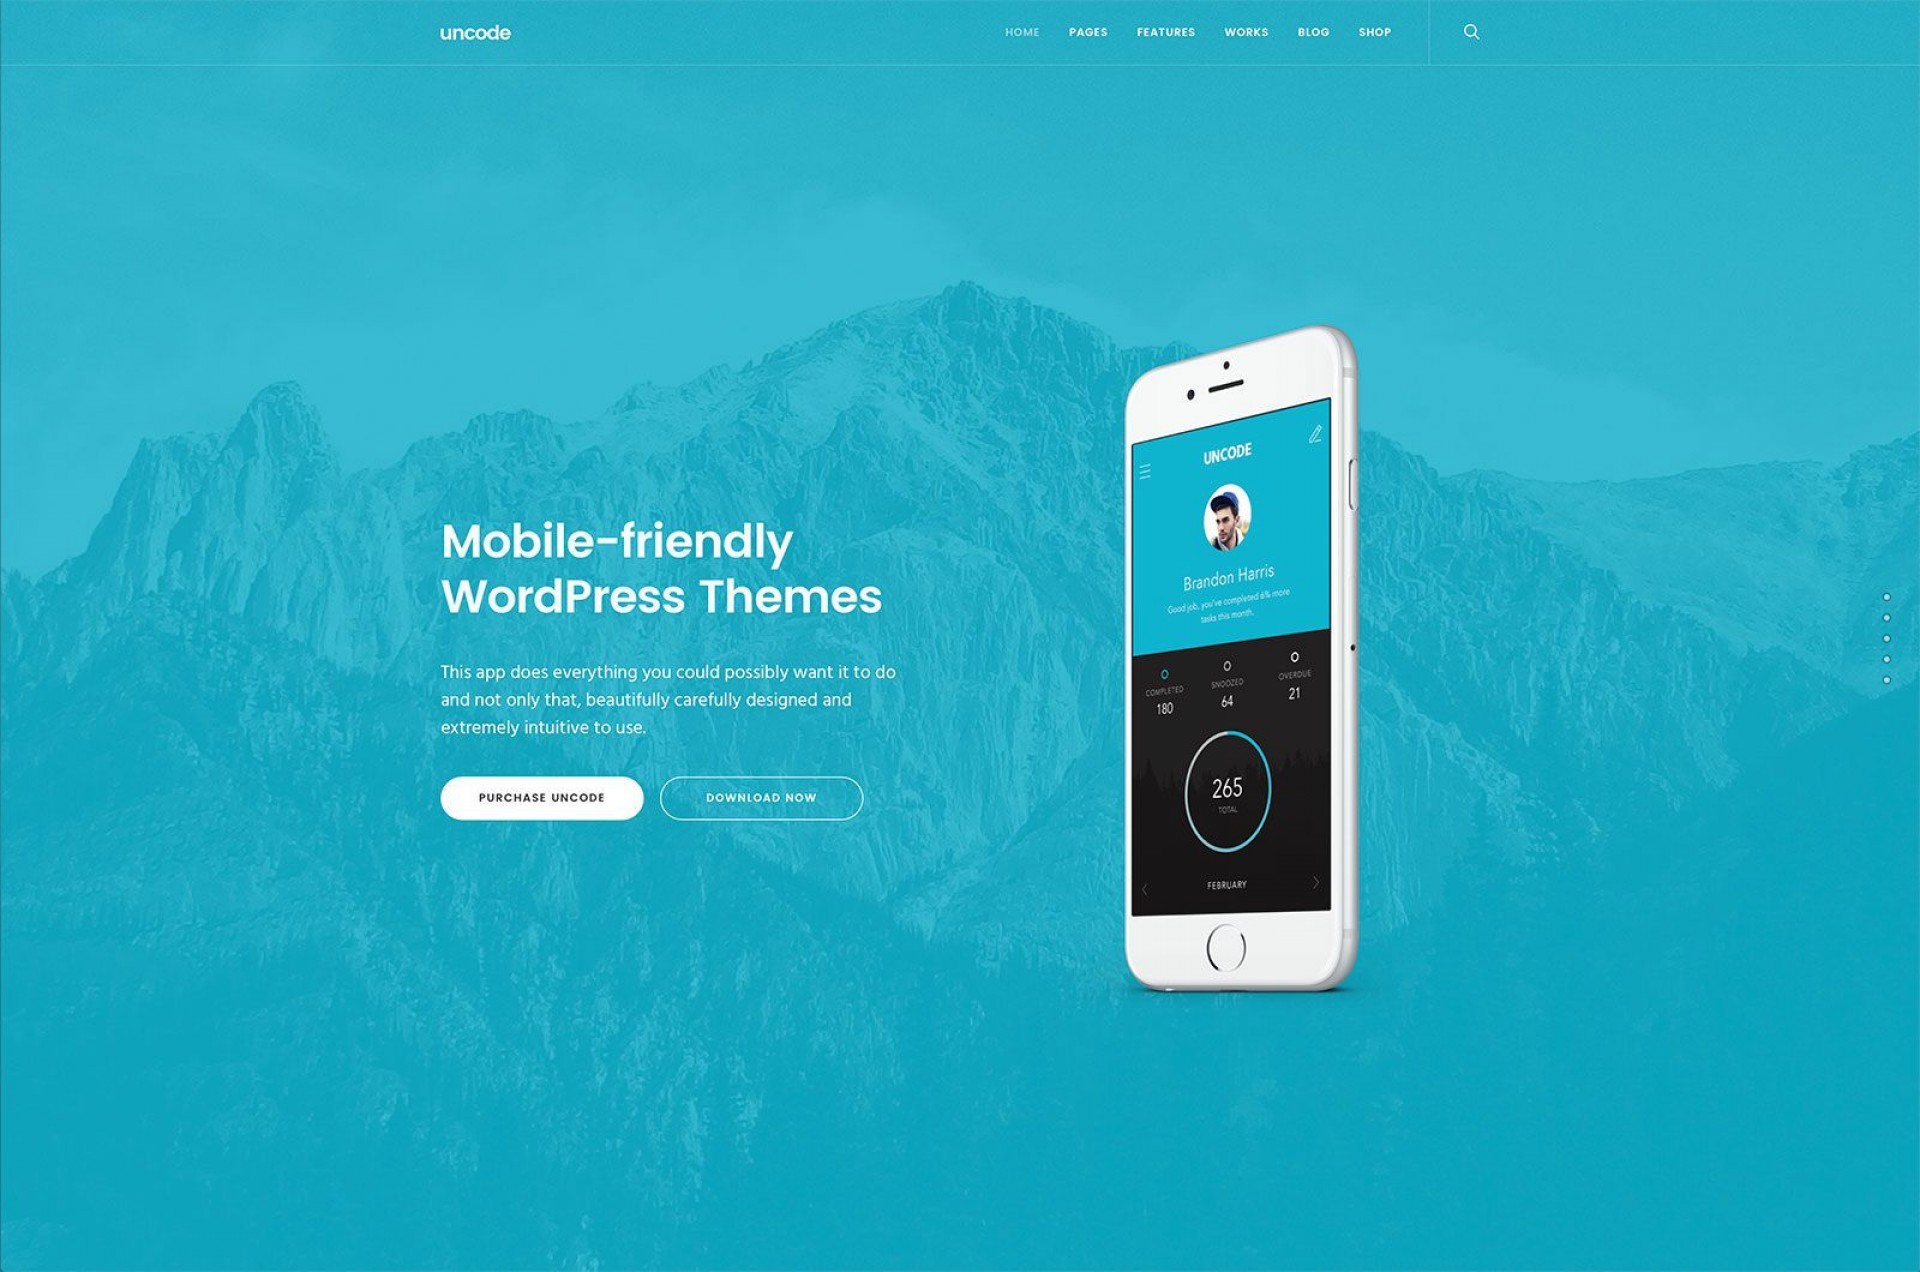 006 Exceptional Mobile Friendly Web Template High Definition  Templates Free Page1920